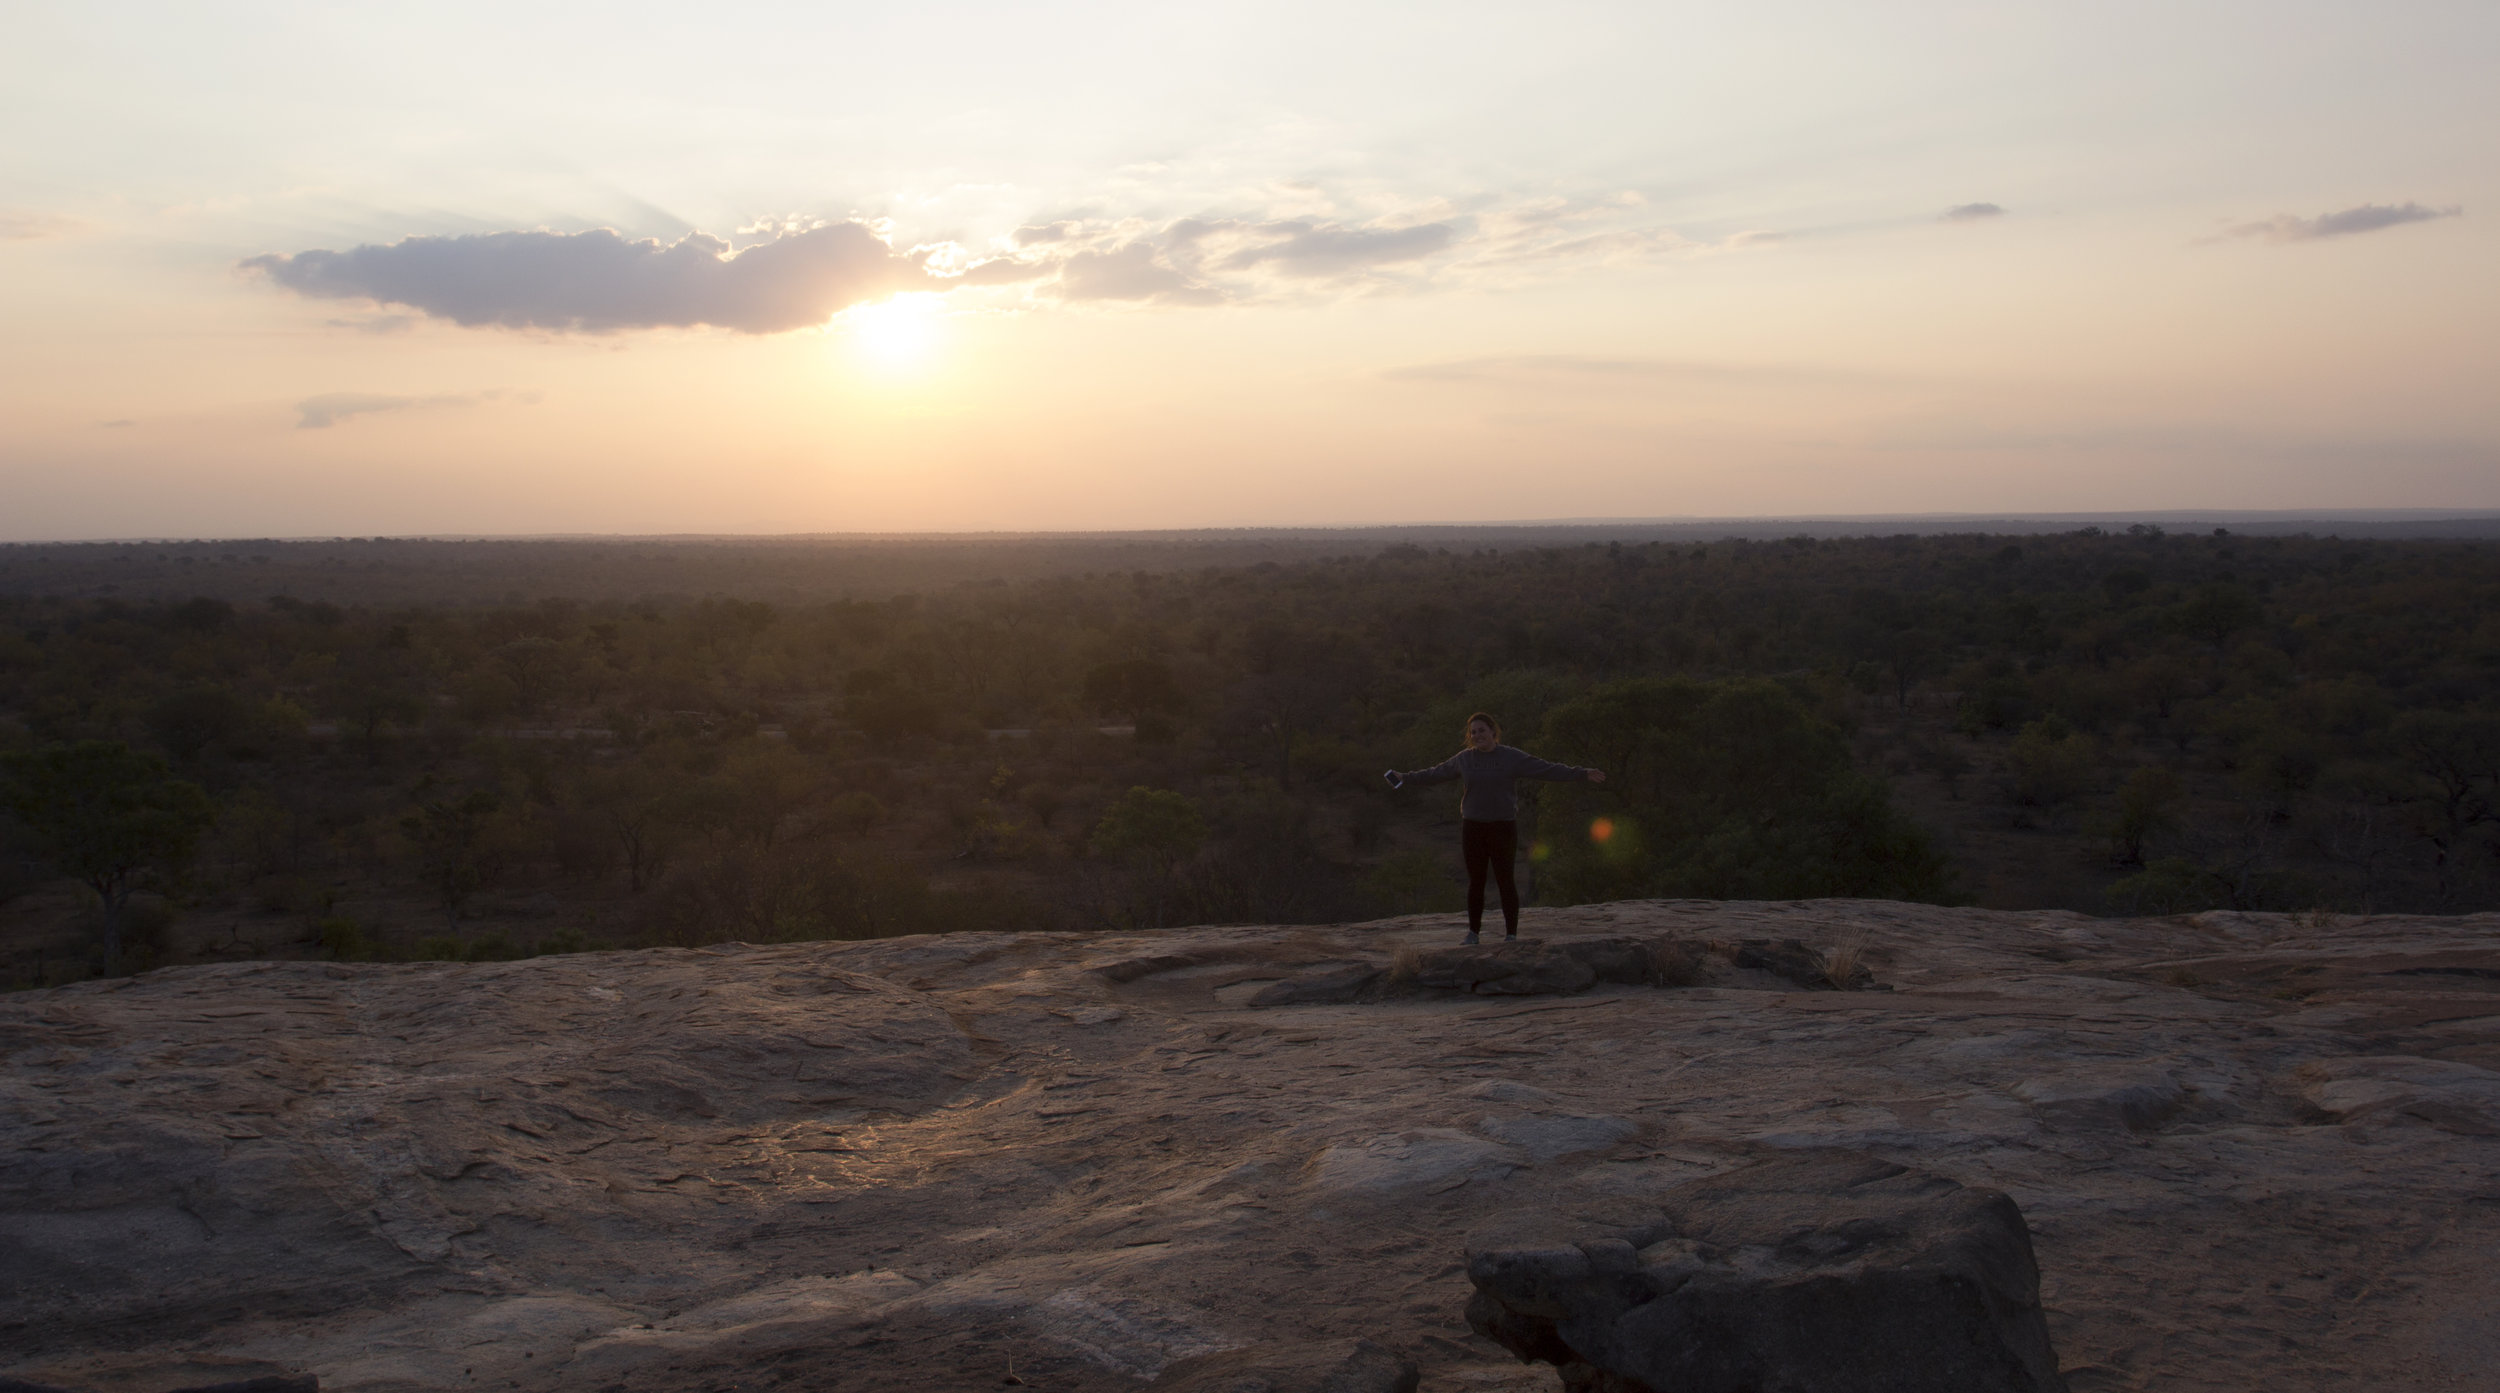 Sunsets - Here is Caroline enjoying the sunset from a great lookout rock near Skukuza Rest Camp, where we slept both nights. We got to watch the sunset and sunrise each day over the beautiful views of the park.